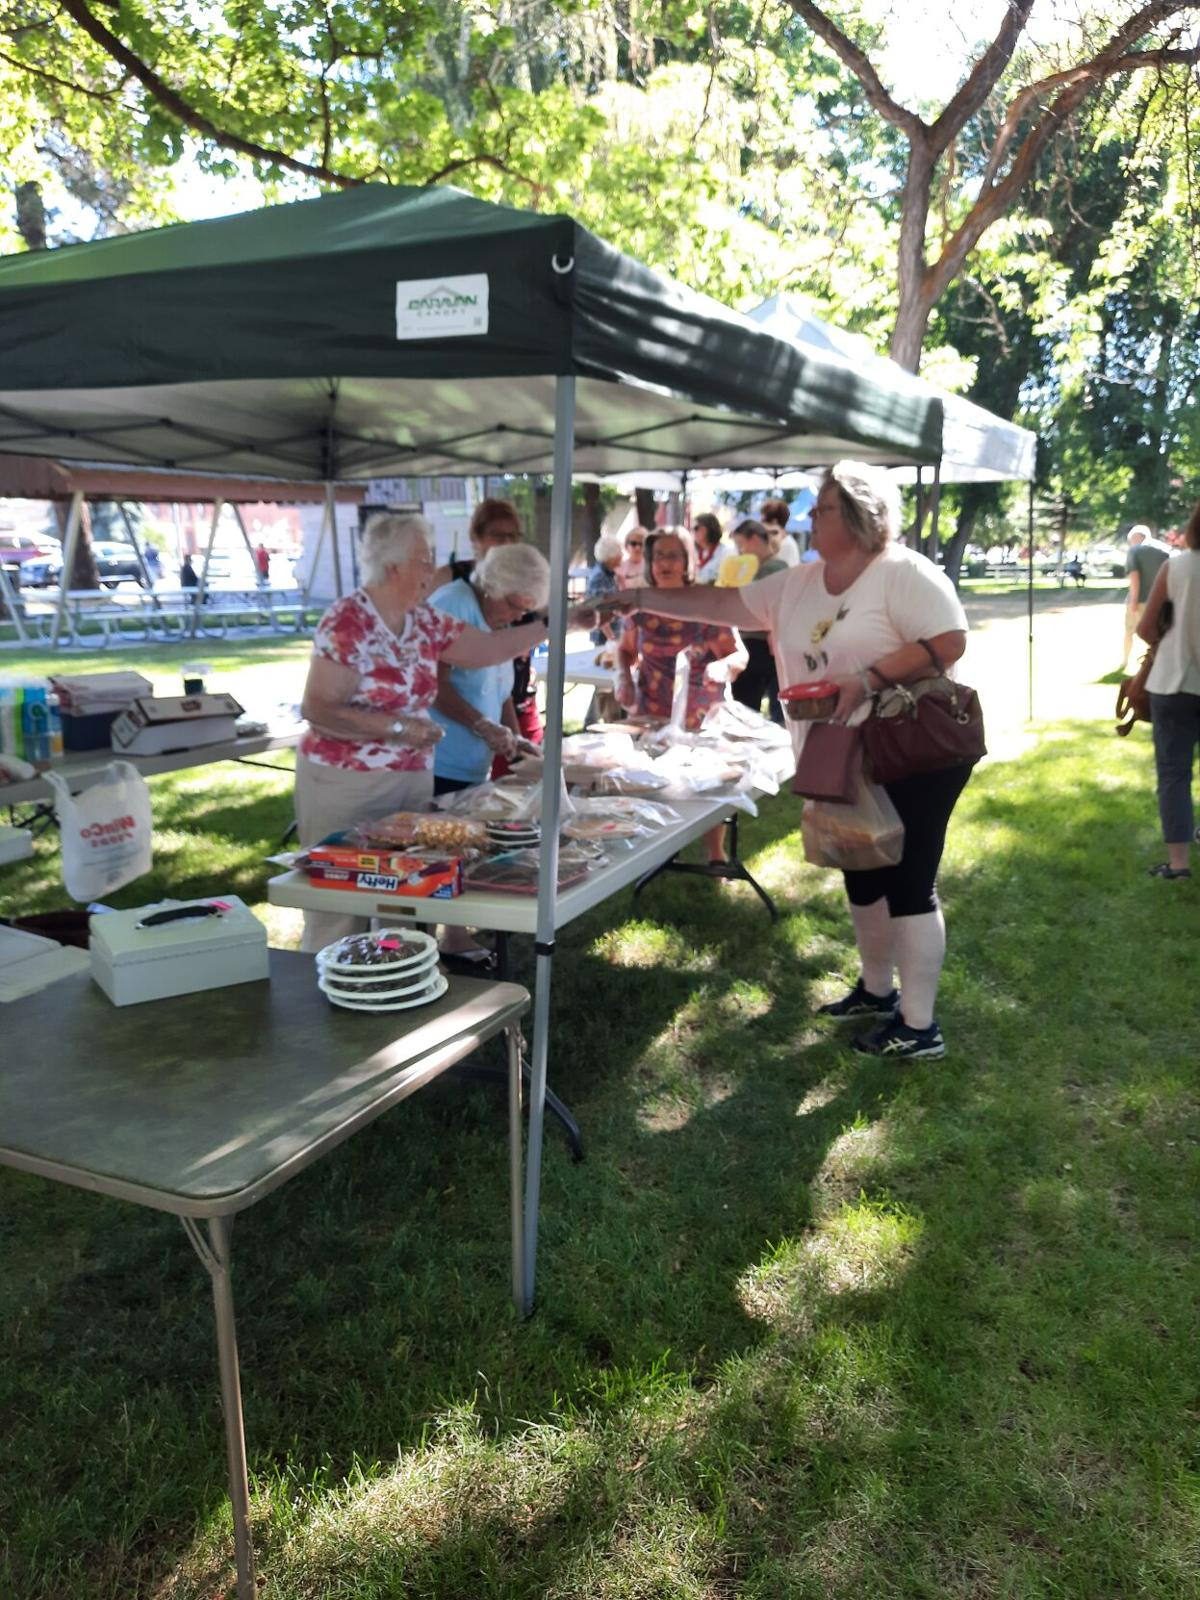 Baked goods were a popular item at this weekend's Farmers Market.jpg